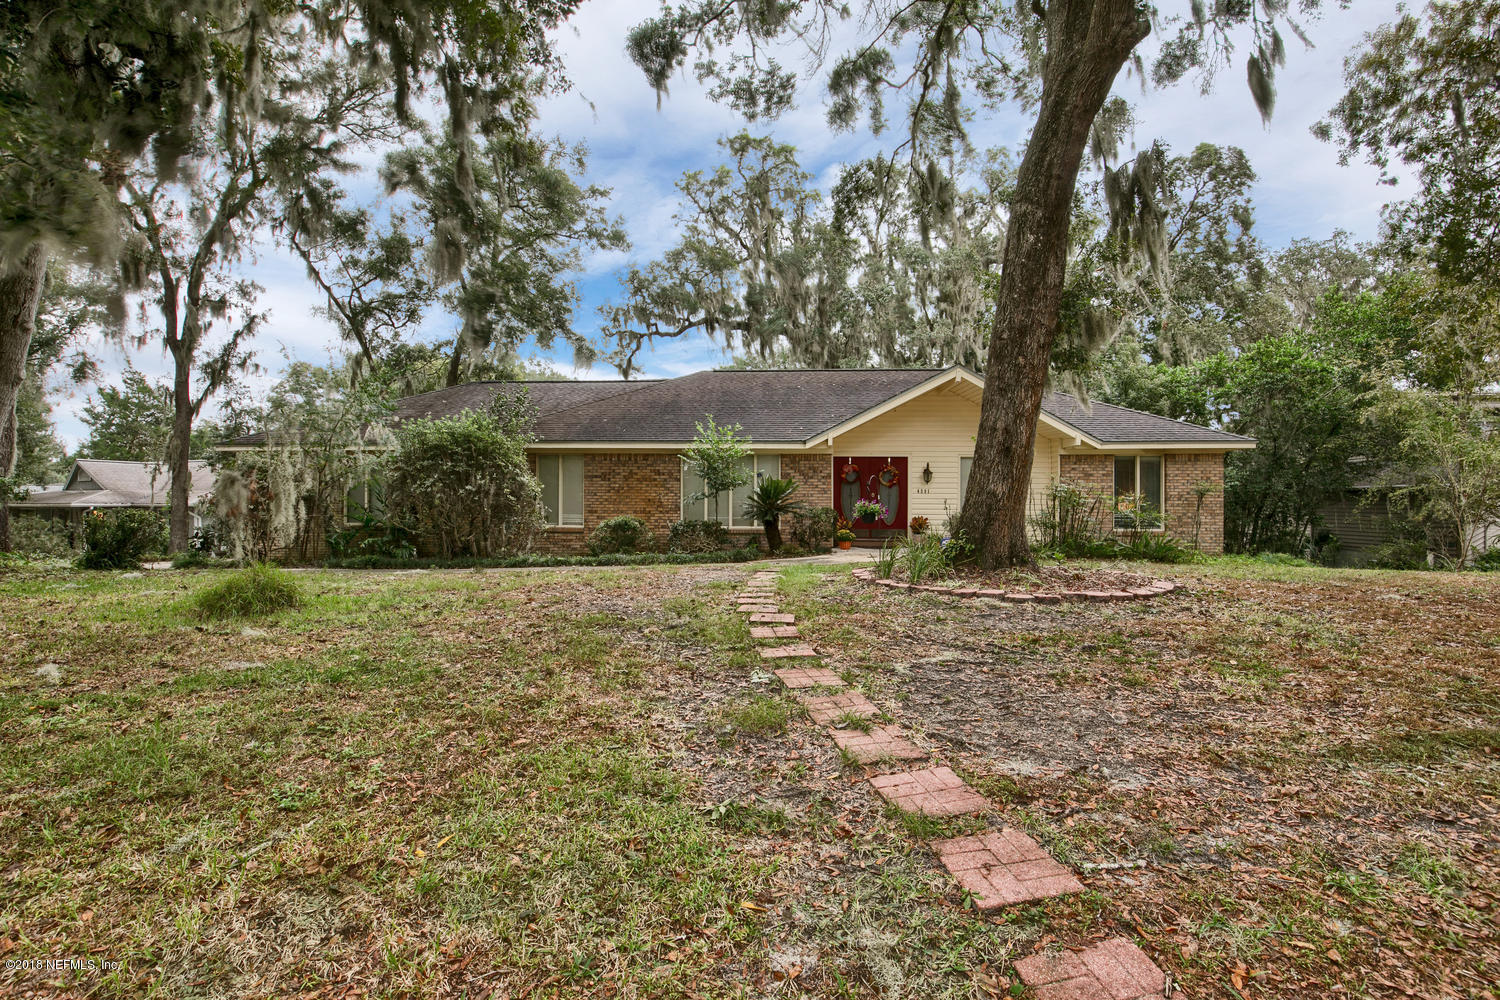 4591 HISTORICAL TRAIL, JACKSONVILLE, FLORIDA 32225, 4 Bedrooms Bedrooms, ,3 BathroomsBathrooms,Residential - single family,For sale,HISTORICAL TRAIL,967439